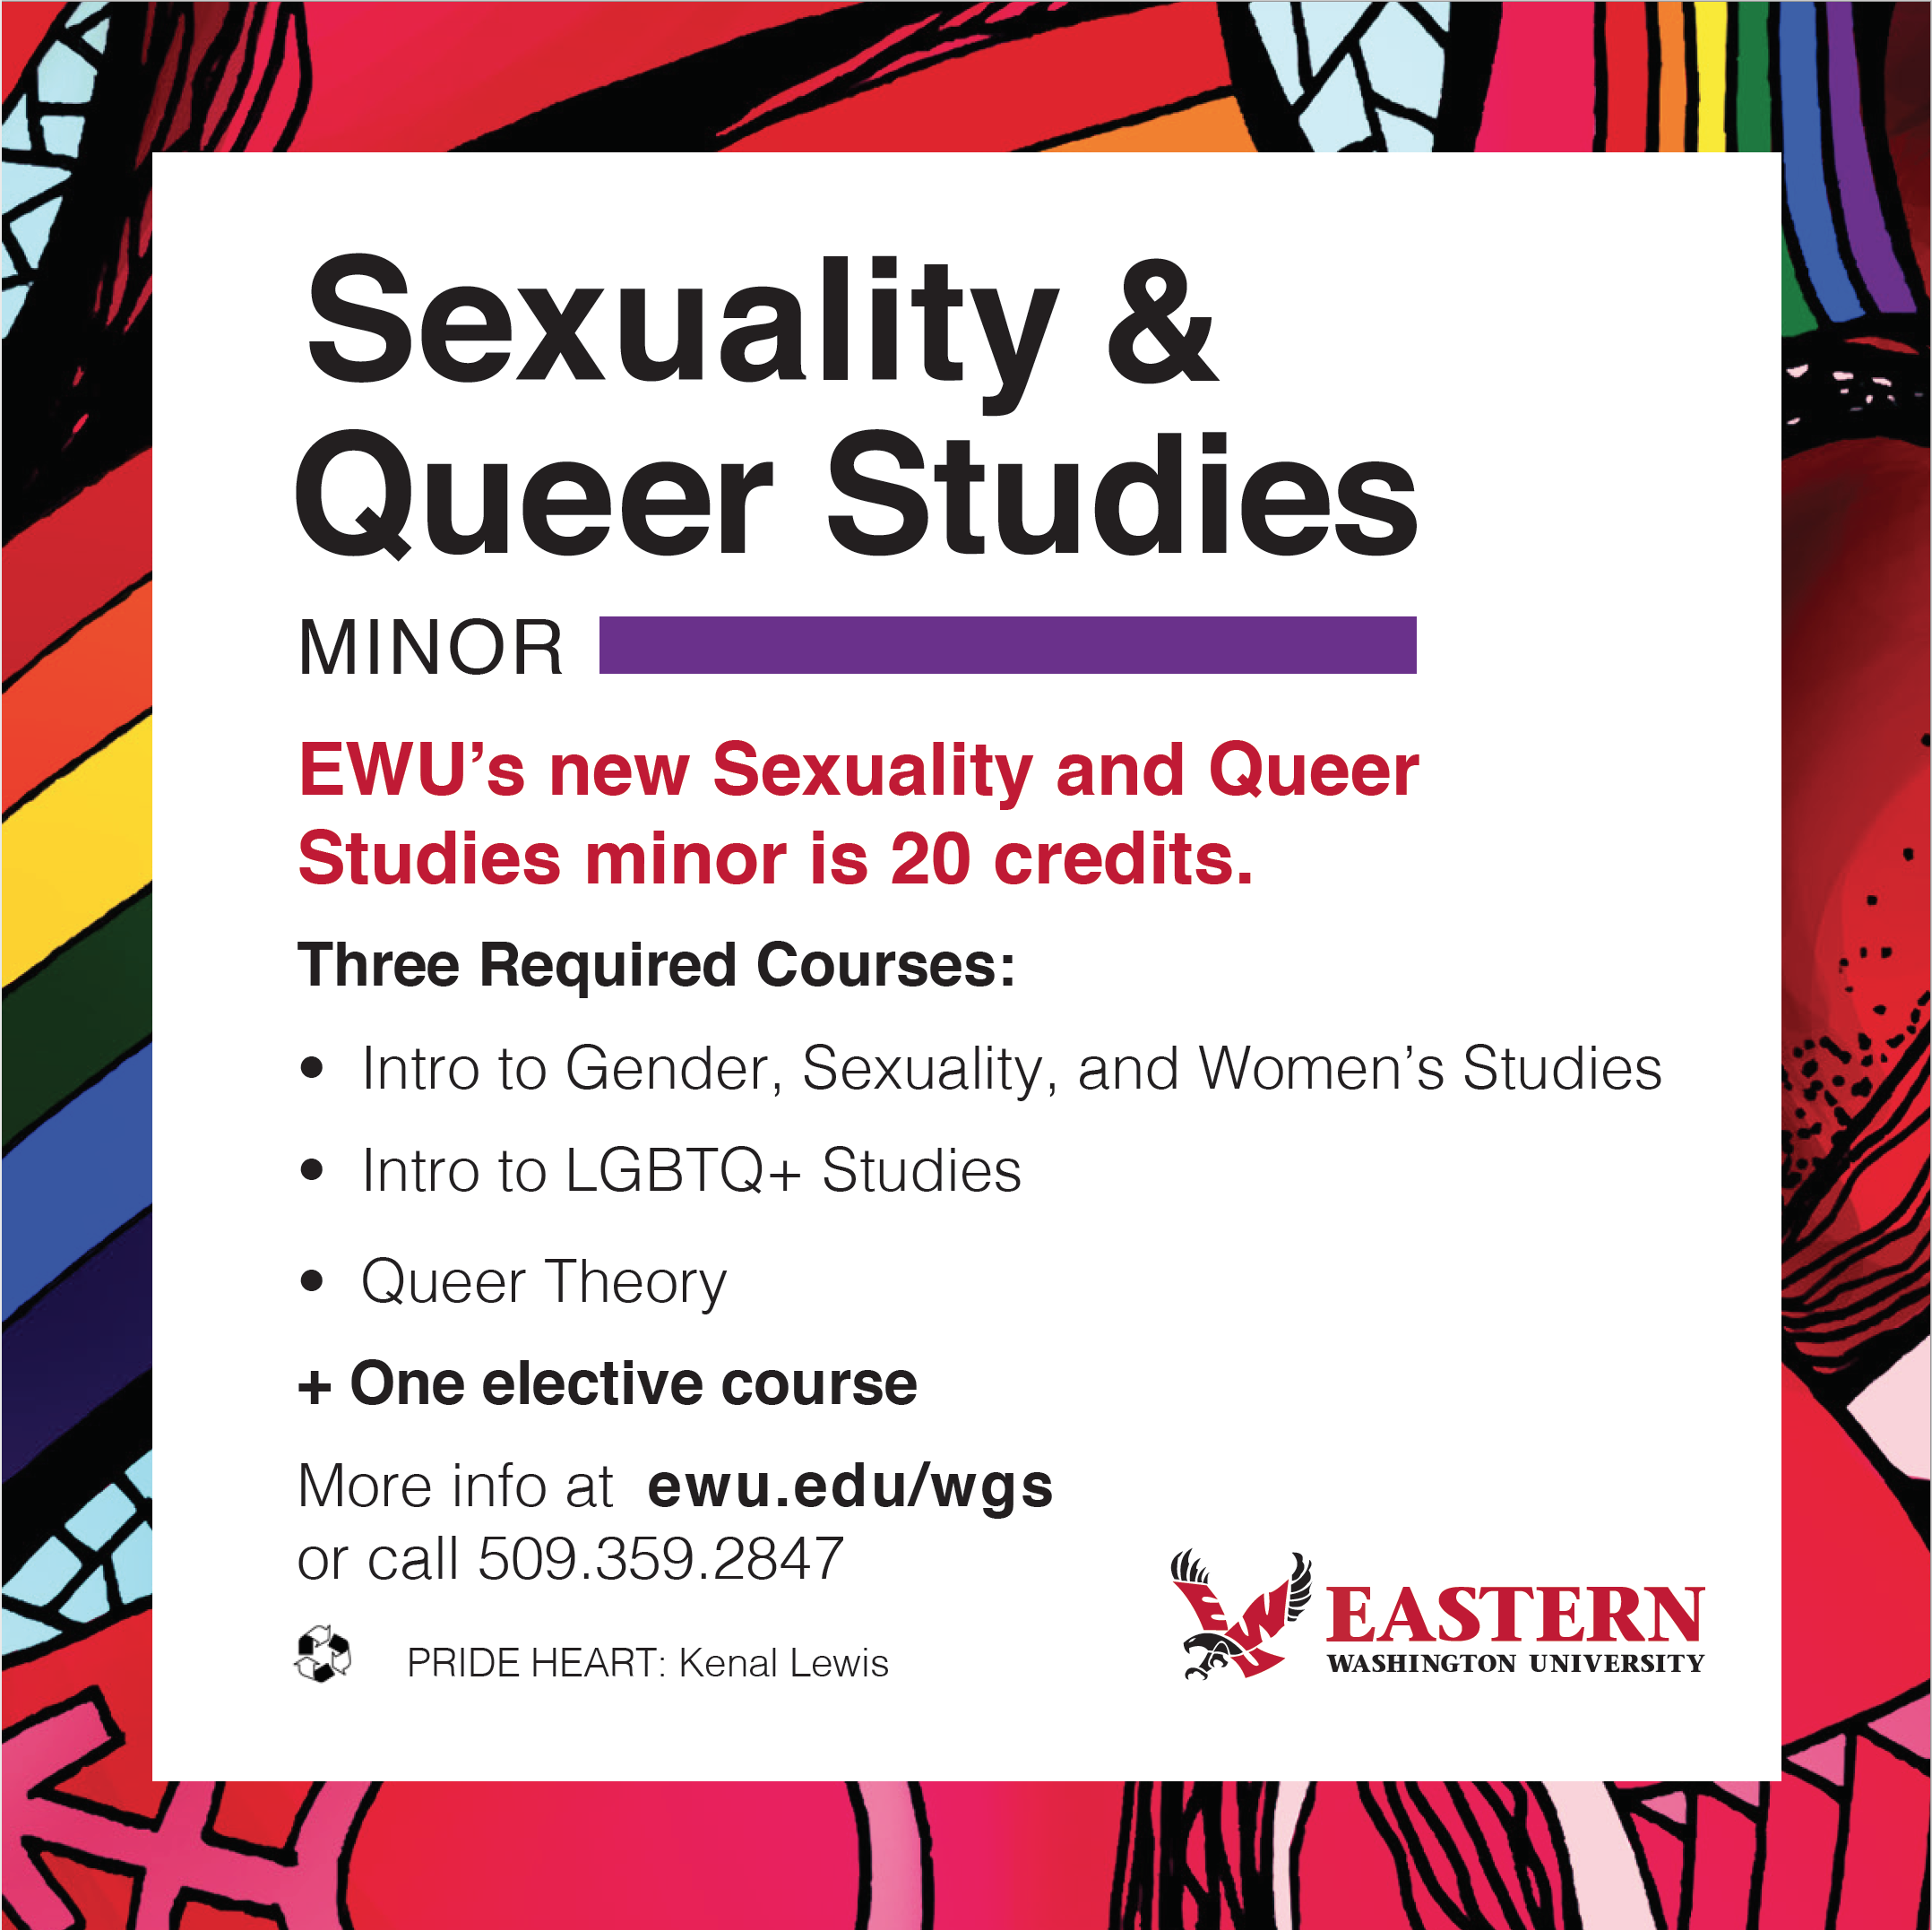 Sexuality and Queer Studies Minor: EWU's new Sexuality and Queer Studies minor is 20 credits. Three required courses: Intro to Gender, Sexuality, and Women's Studies, Intro to LGBTQ+ Studies, Queer Theory + one elective course. More info at ewu.edu/gwss or call (509) 359-2847.